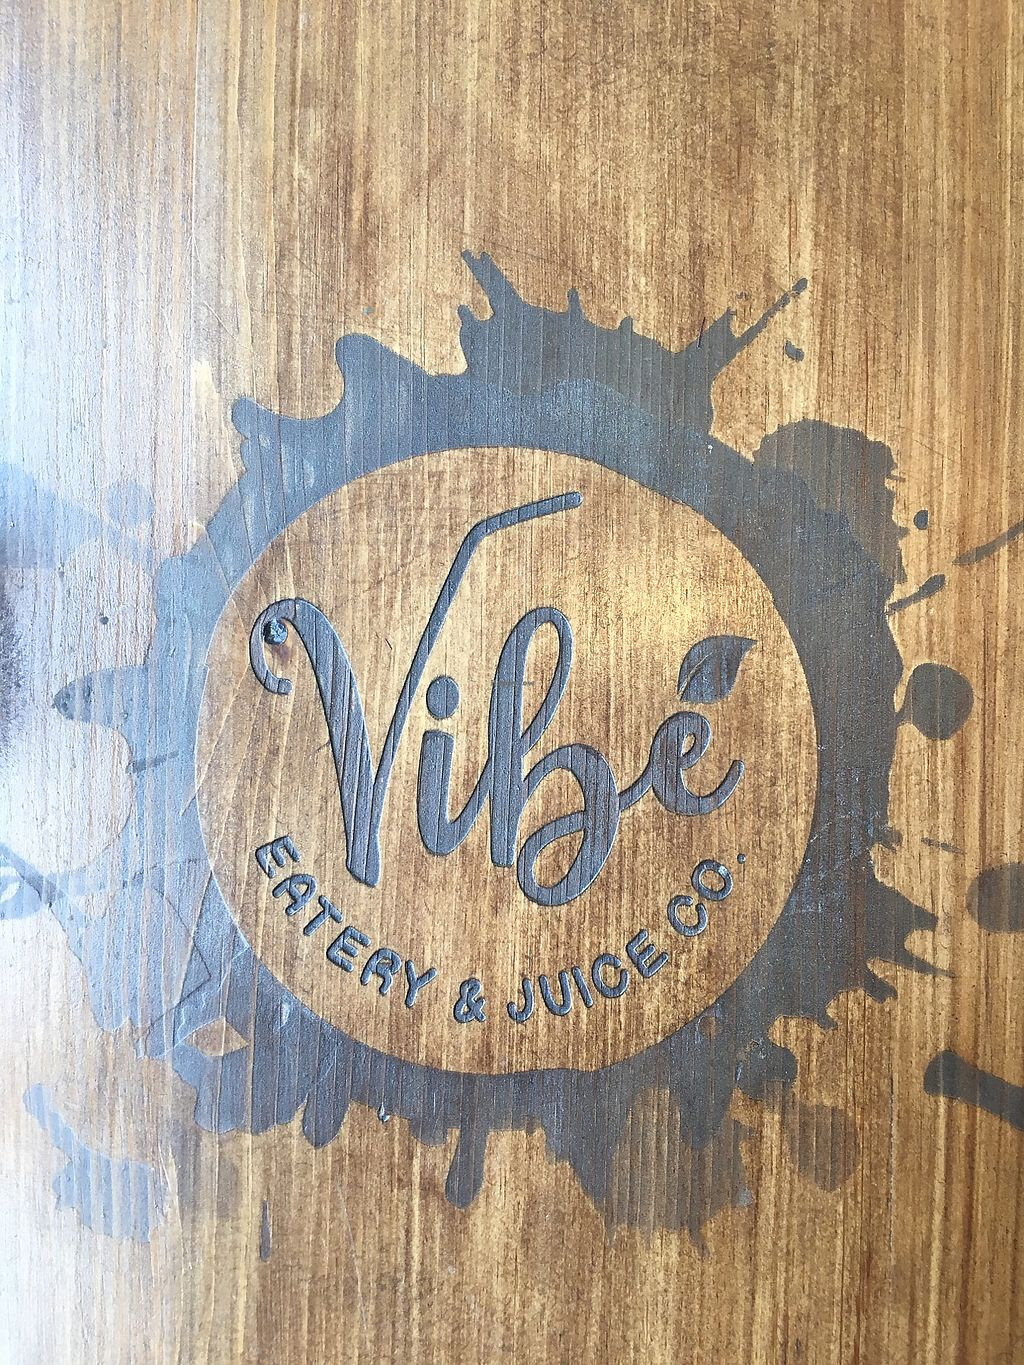 """Photo of Vibe Eatery & Juice  by <a href=""""/members/profile/ChristopherInfantry"""">ChristopherInfantry</a> <br/>the tables! <br/> July 13, 2017  - <a href='/contact/abuse/image/96101/279821'>Report</a>"""